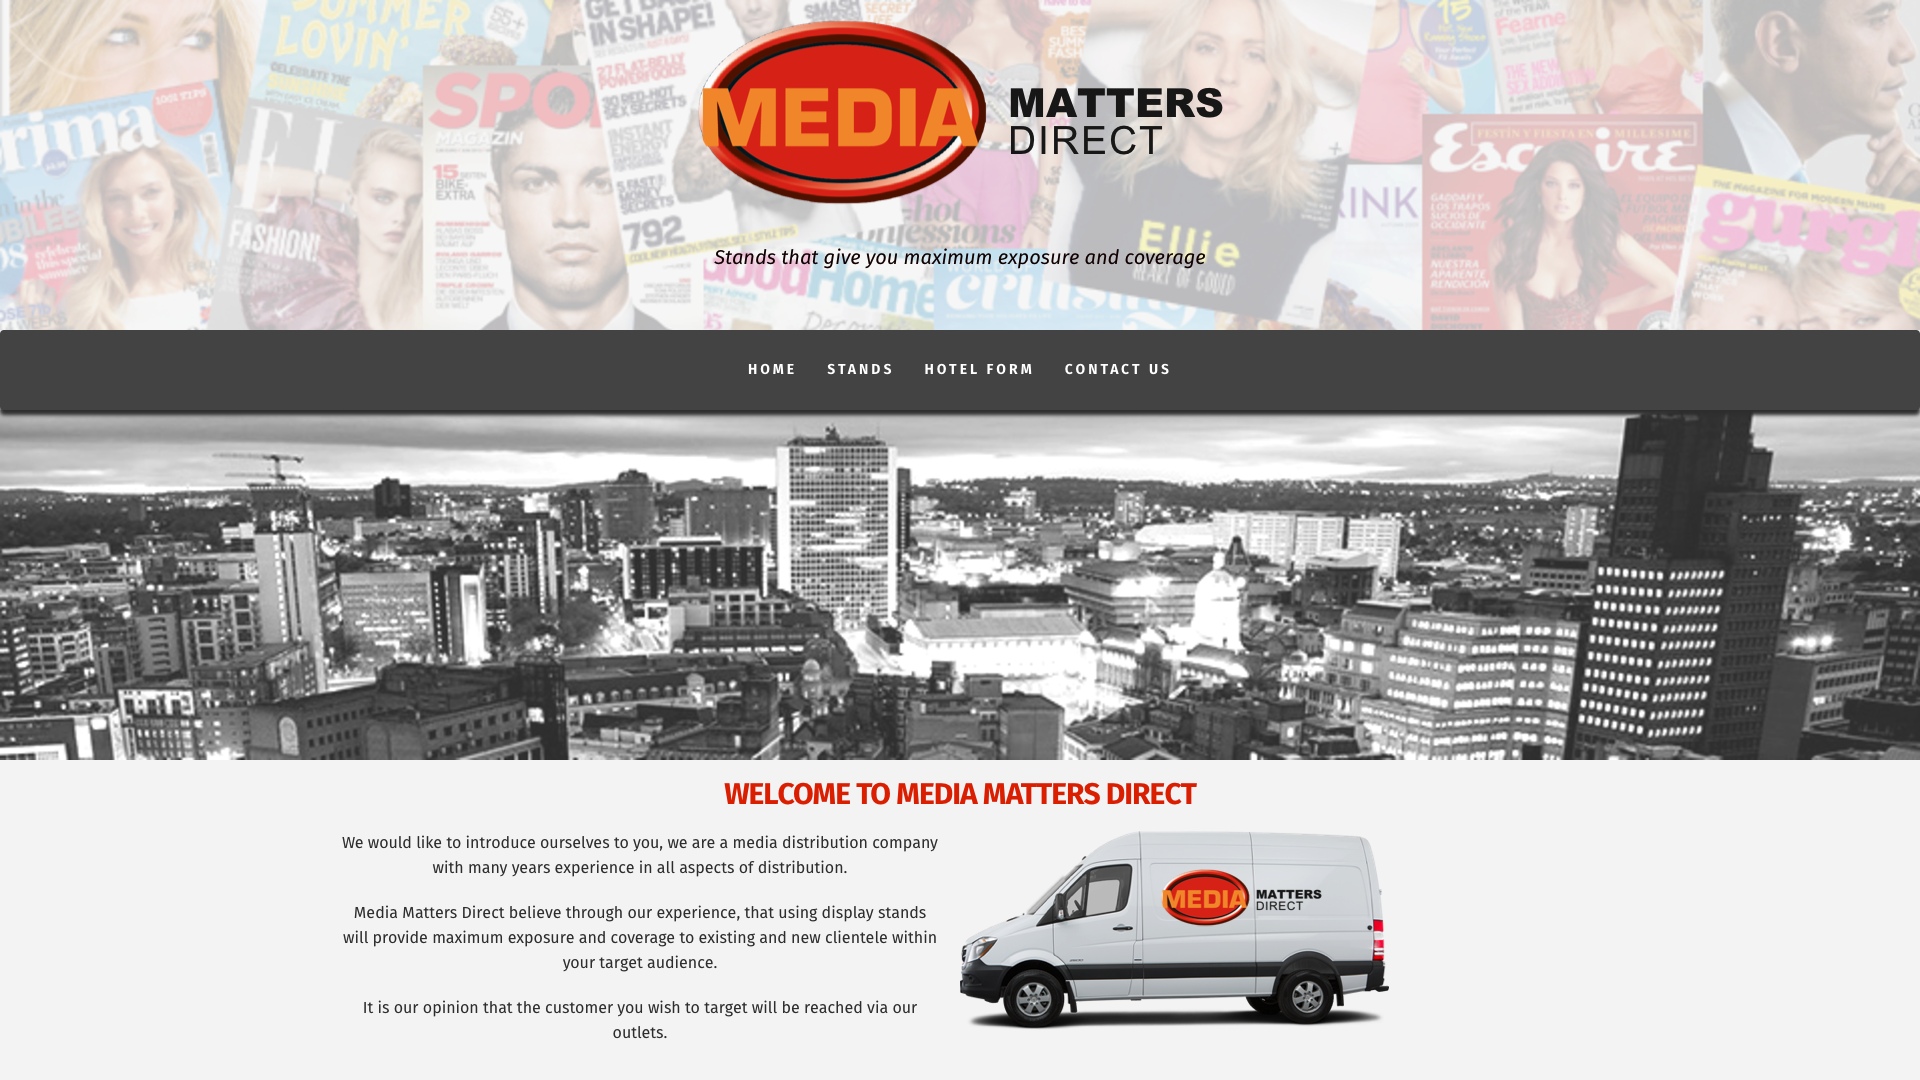 Media Matters Direct